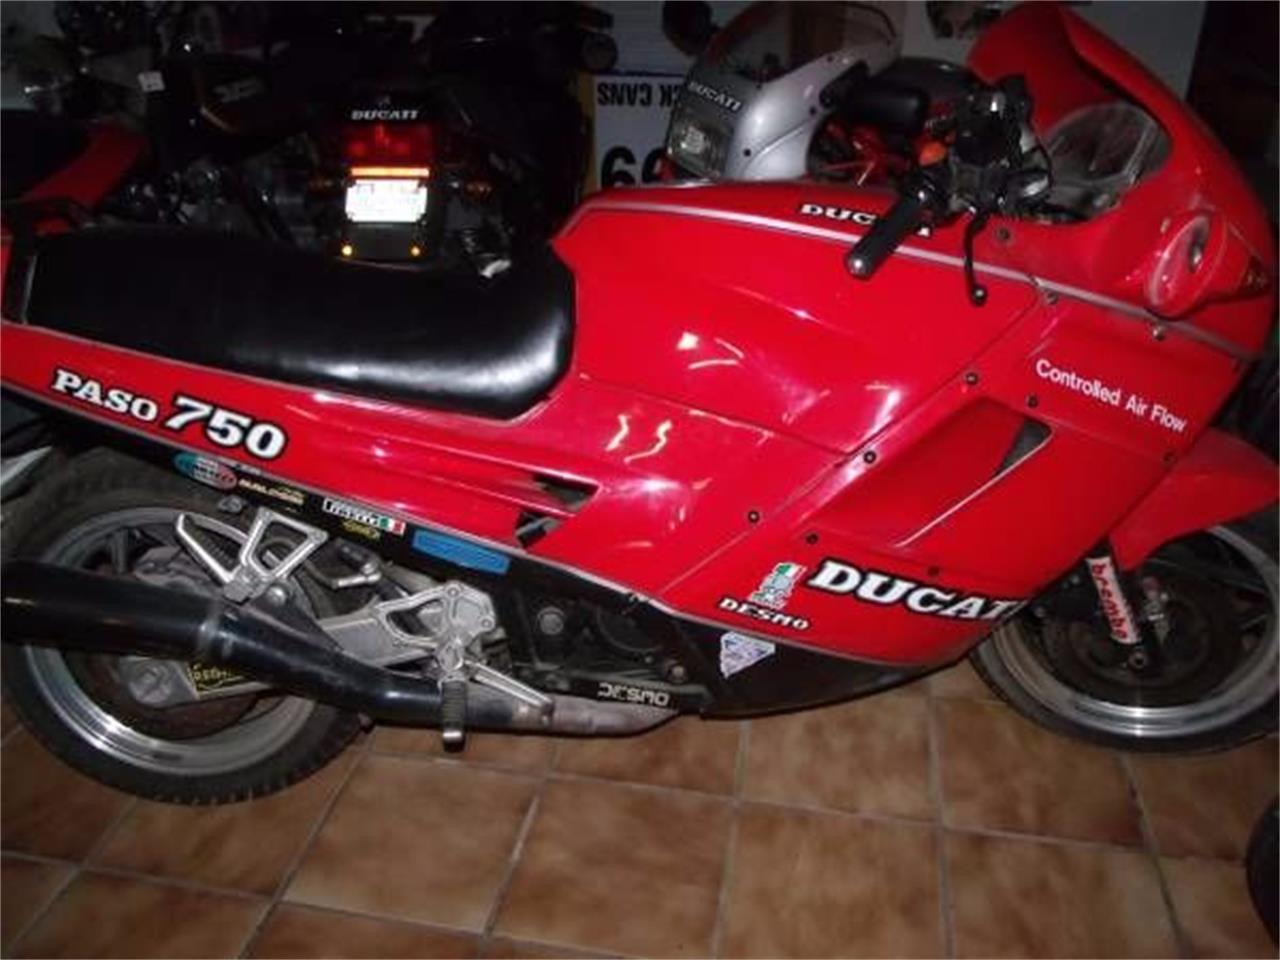 Large Picture of '87 Ducati Motorcycle located in Cadillac Michigan Offered by Classic Car Deals - O85S